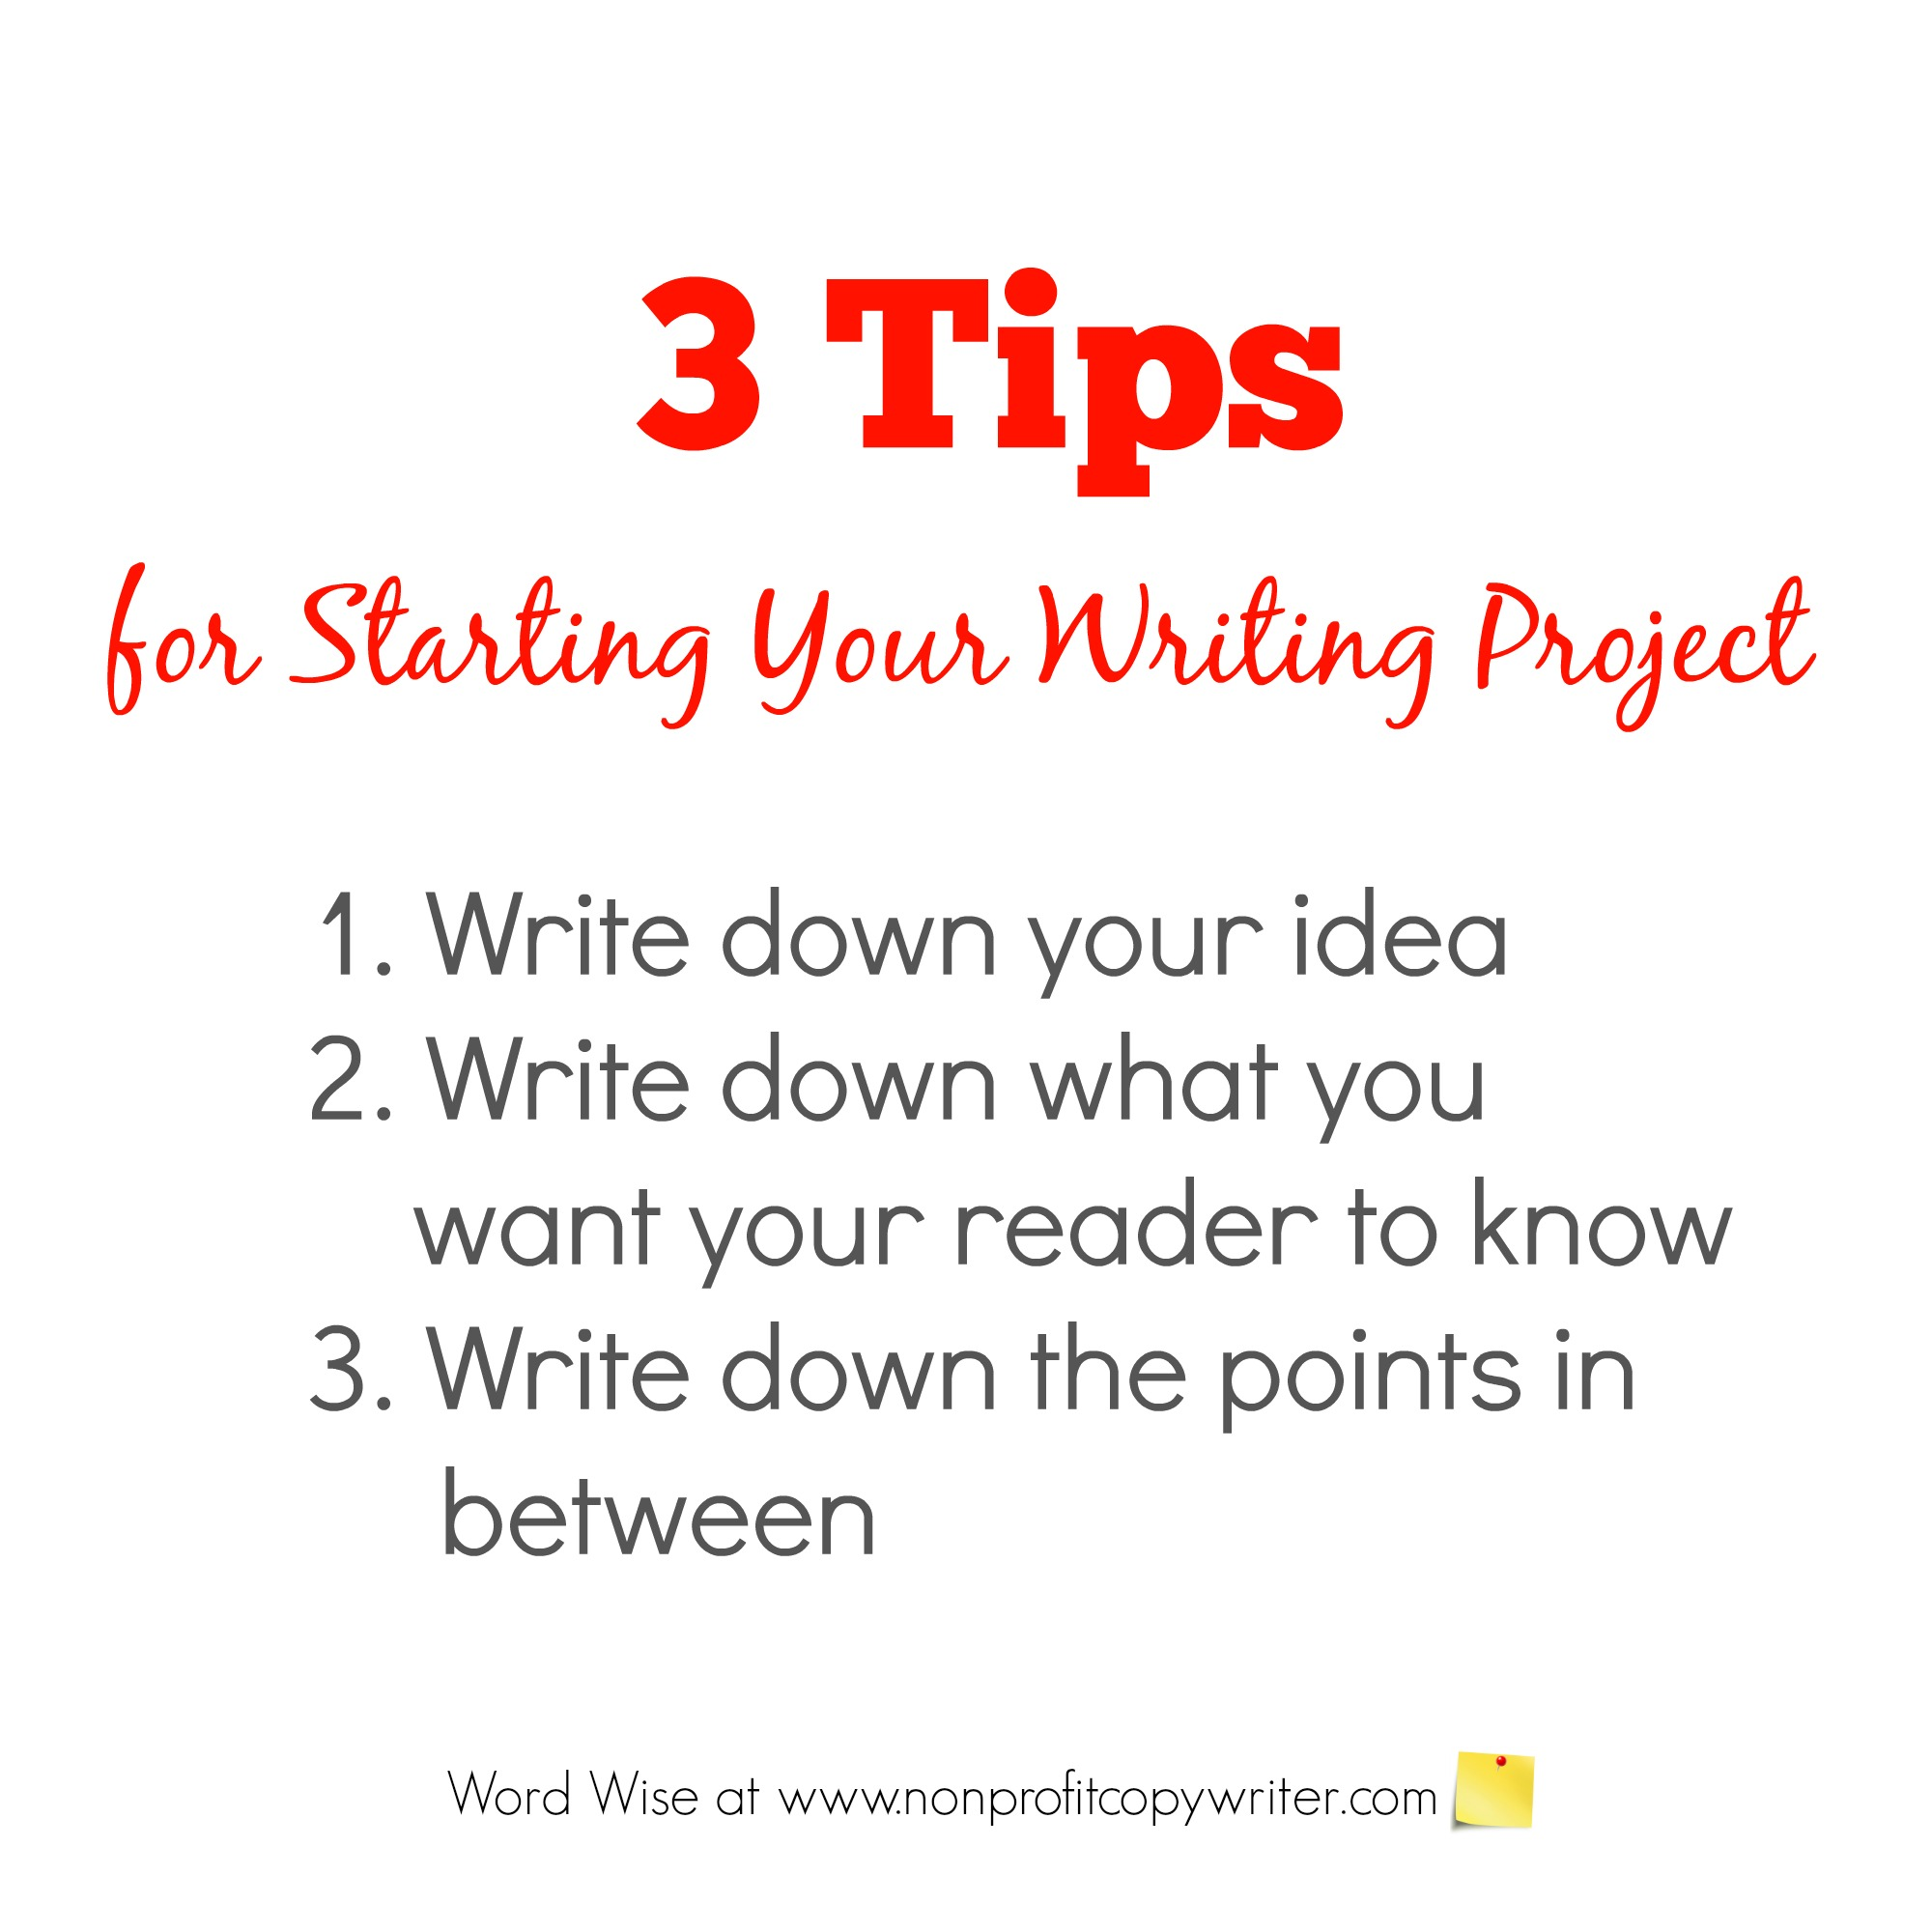 3 tips for starting your writing project with Word Wise at Nonprofit Copywriter